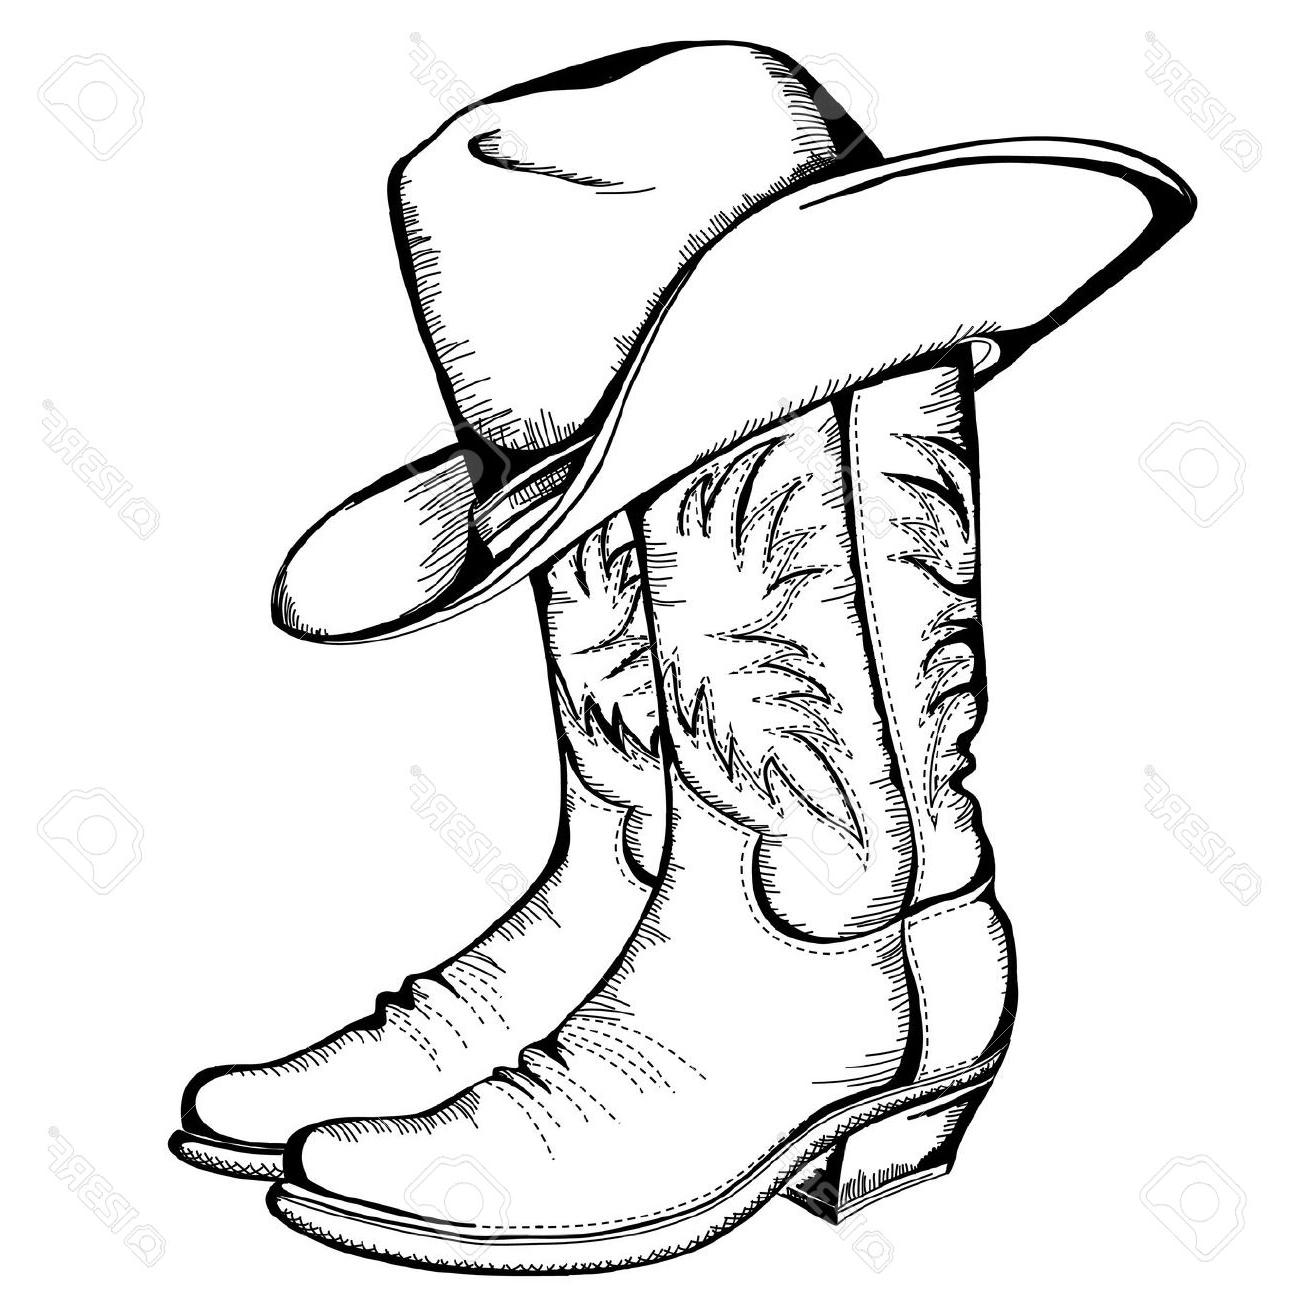 1300x1300 Hd Cowboy Boots And Hat Graphic Illustration Stock Vector Images